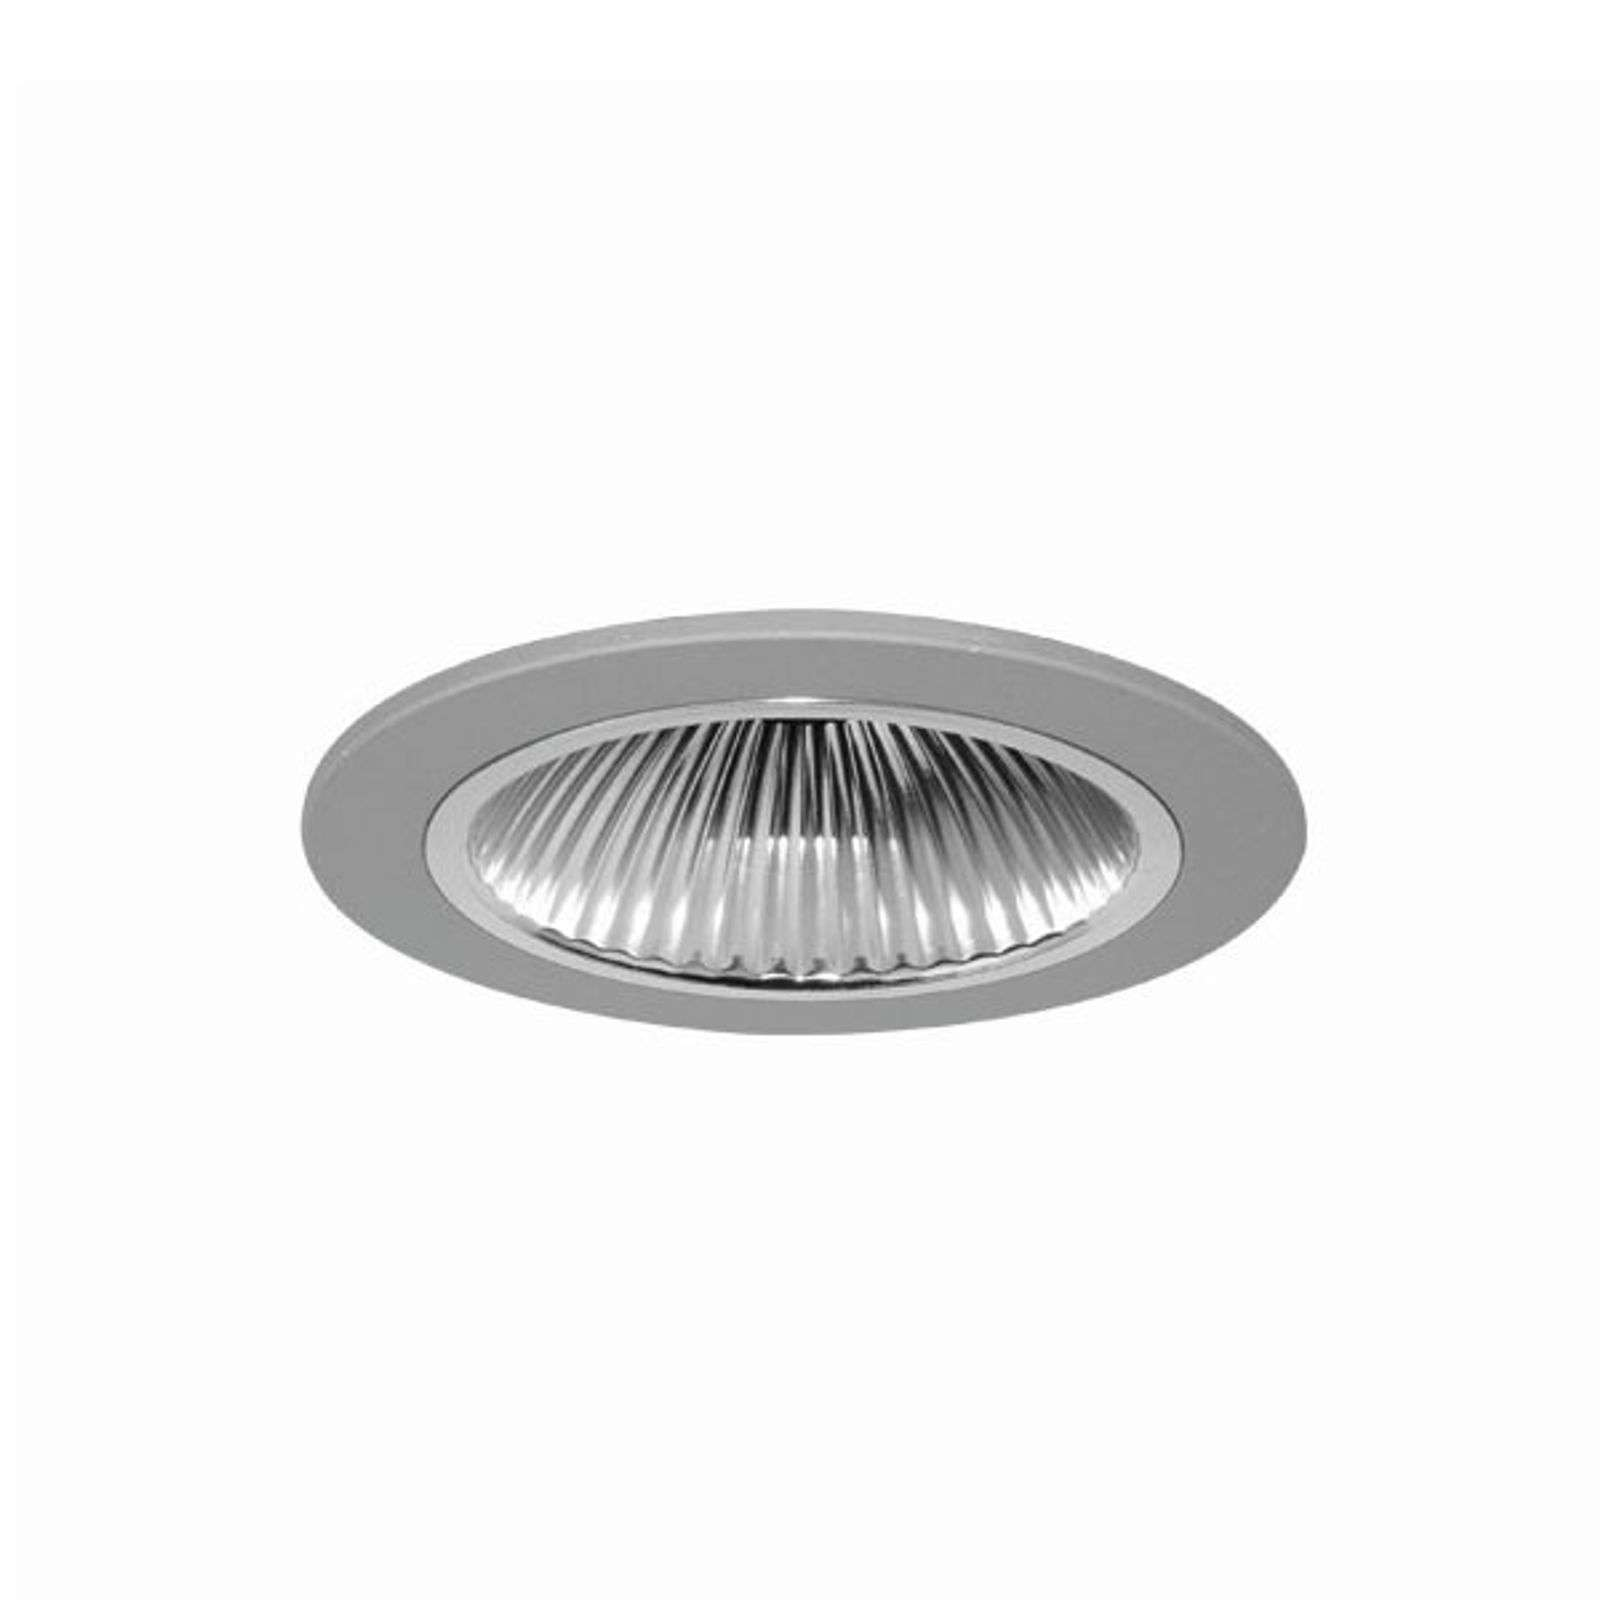 Spot encastrable LED CSA 40 Flat 35° 36 W 3600 lm